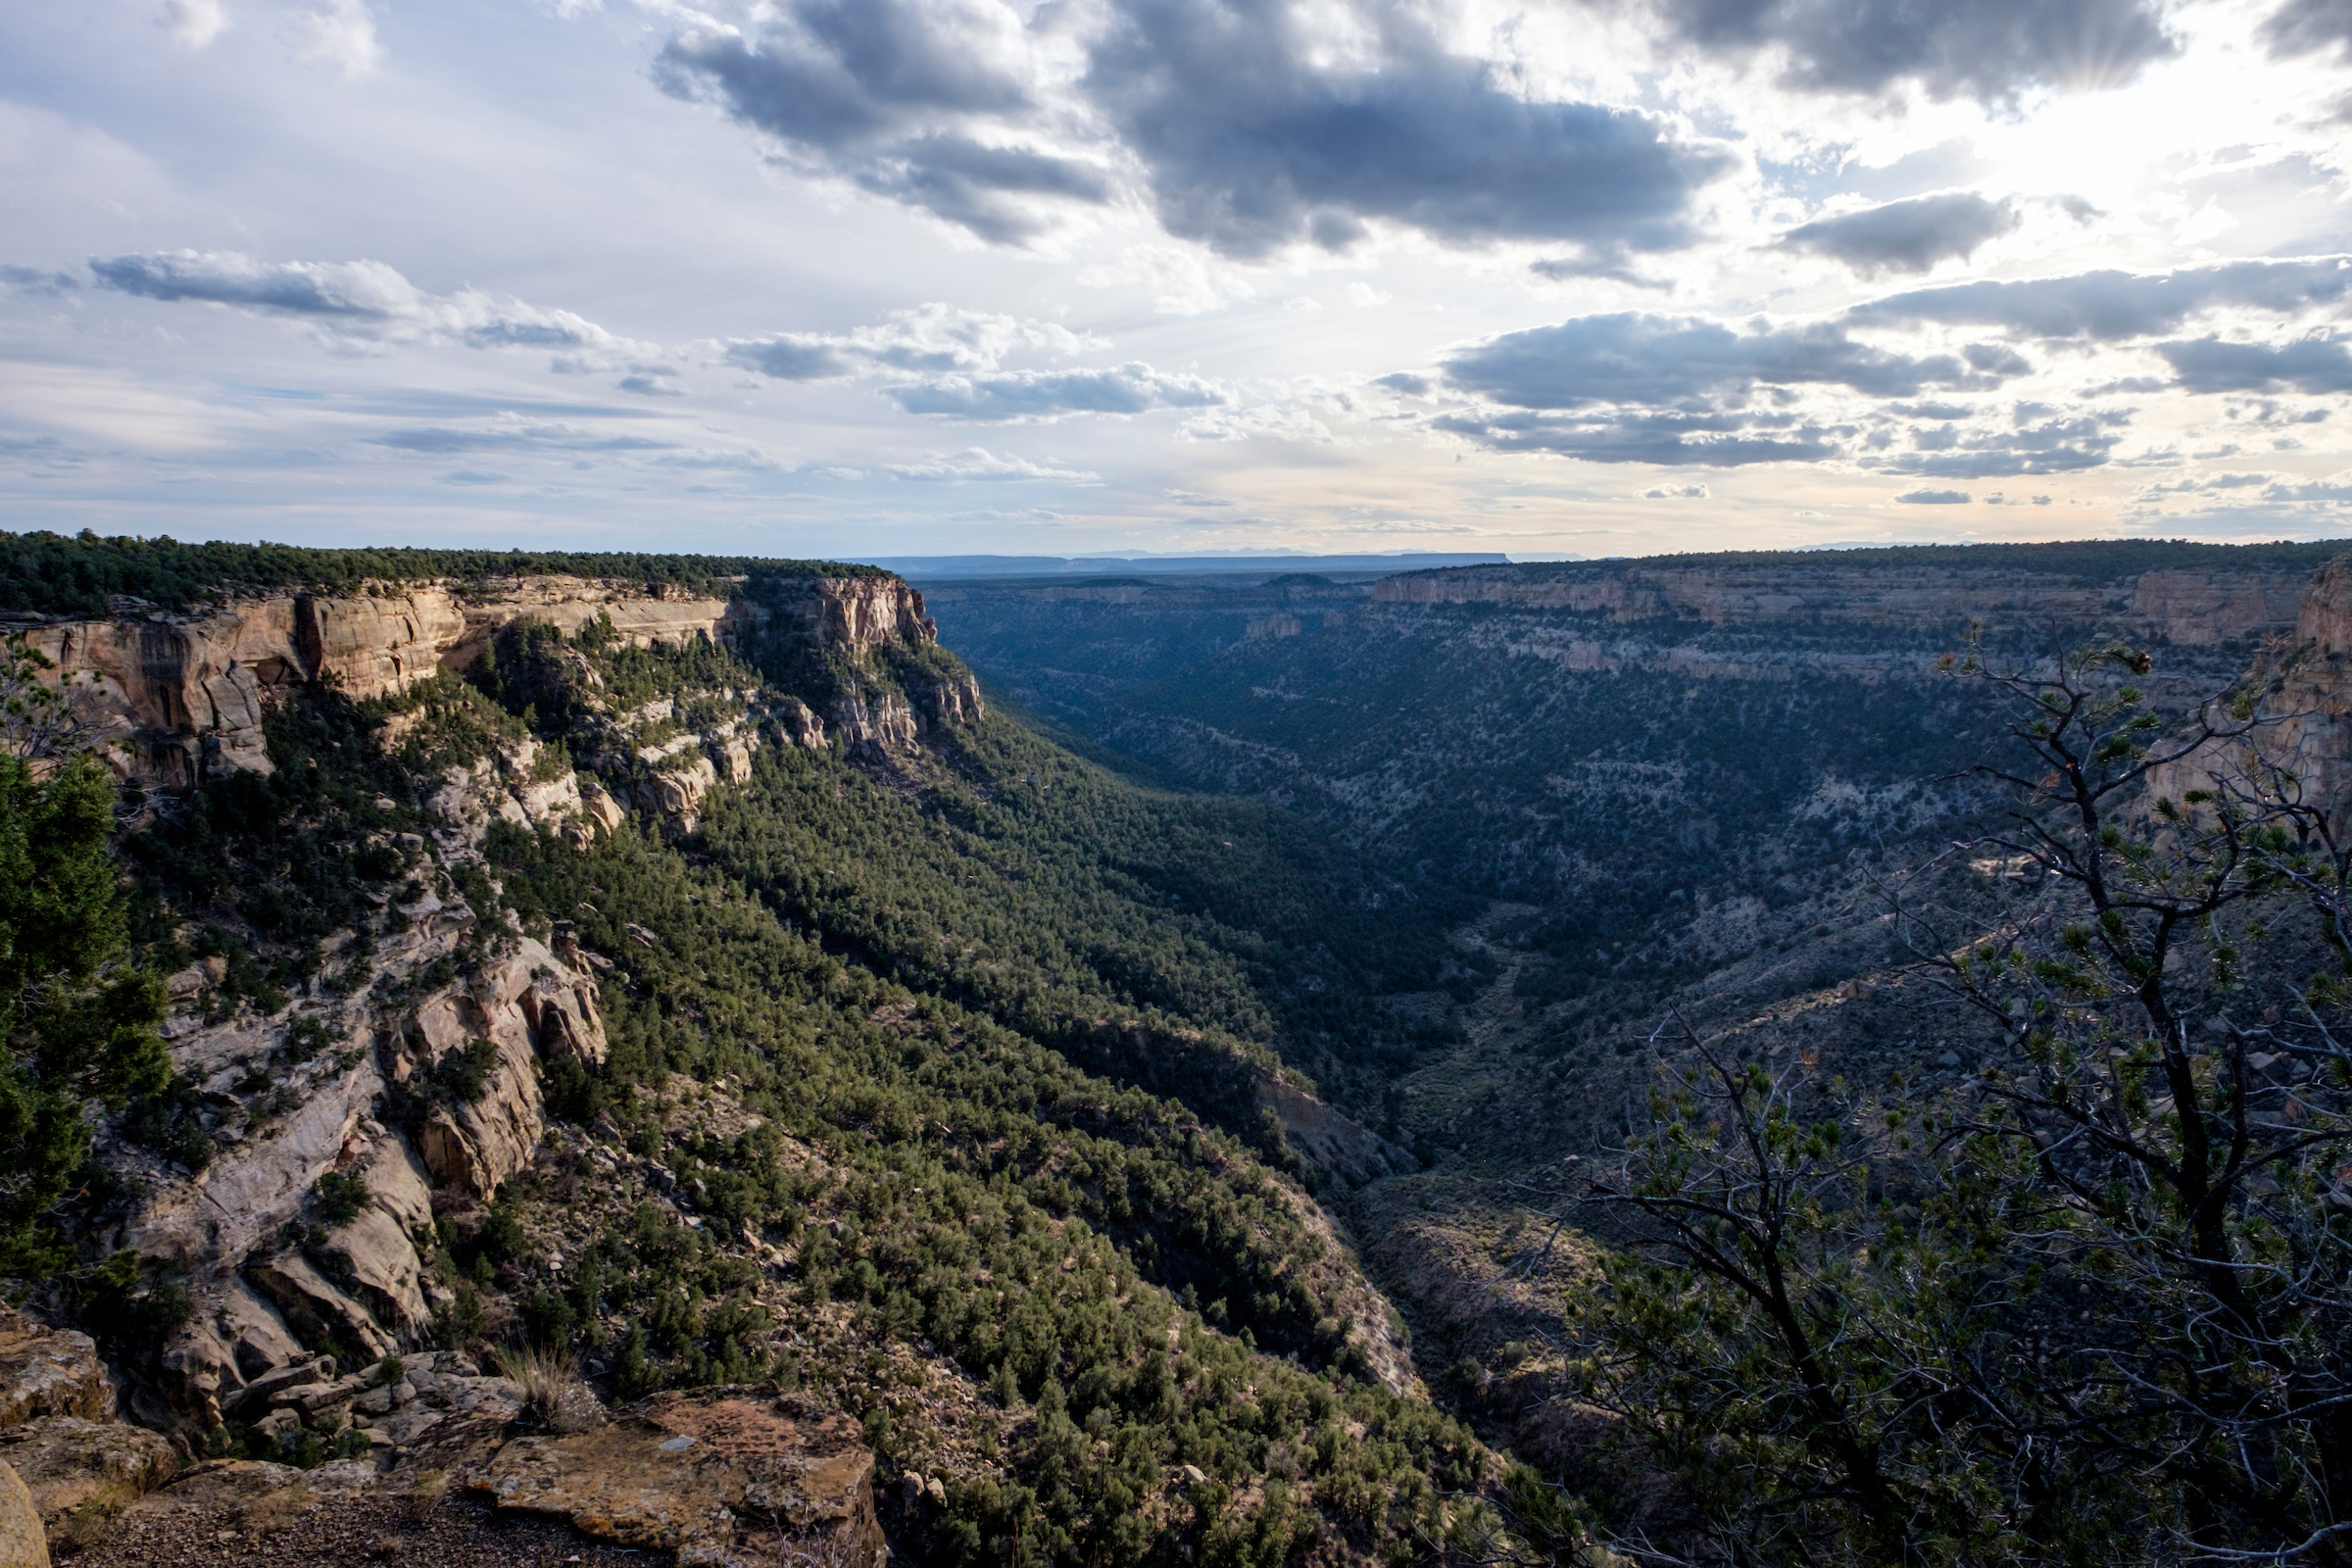 This park earned its name from the pinyon pine and juniper forests that blanket the ceiling and slopes of the Navajo Canyon.